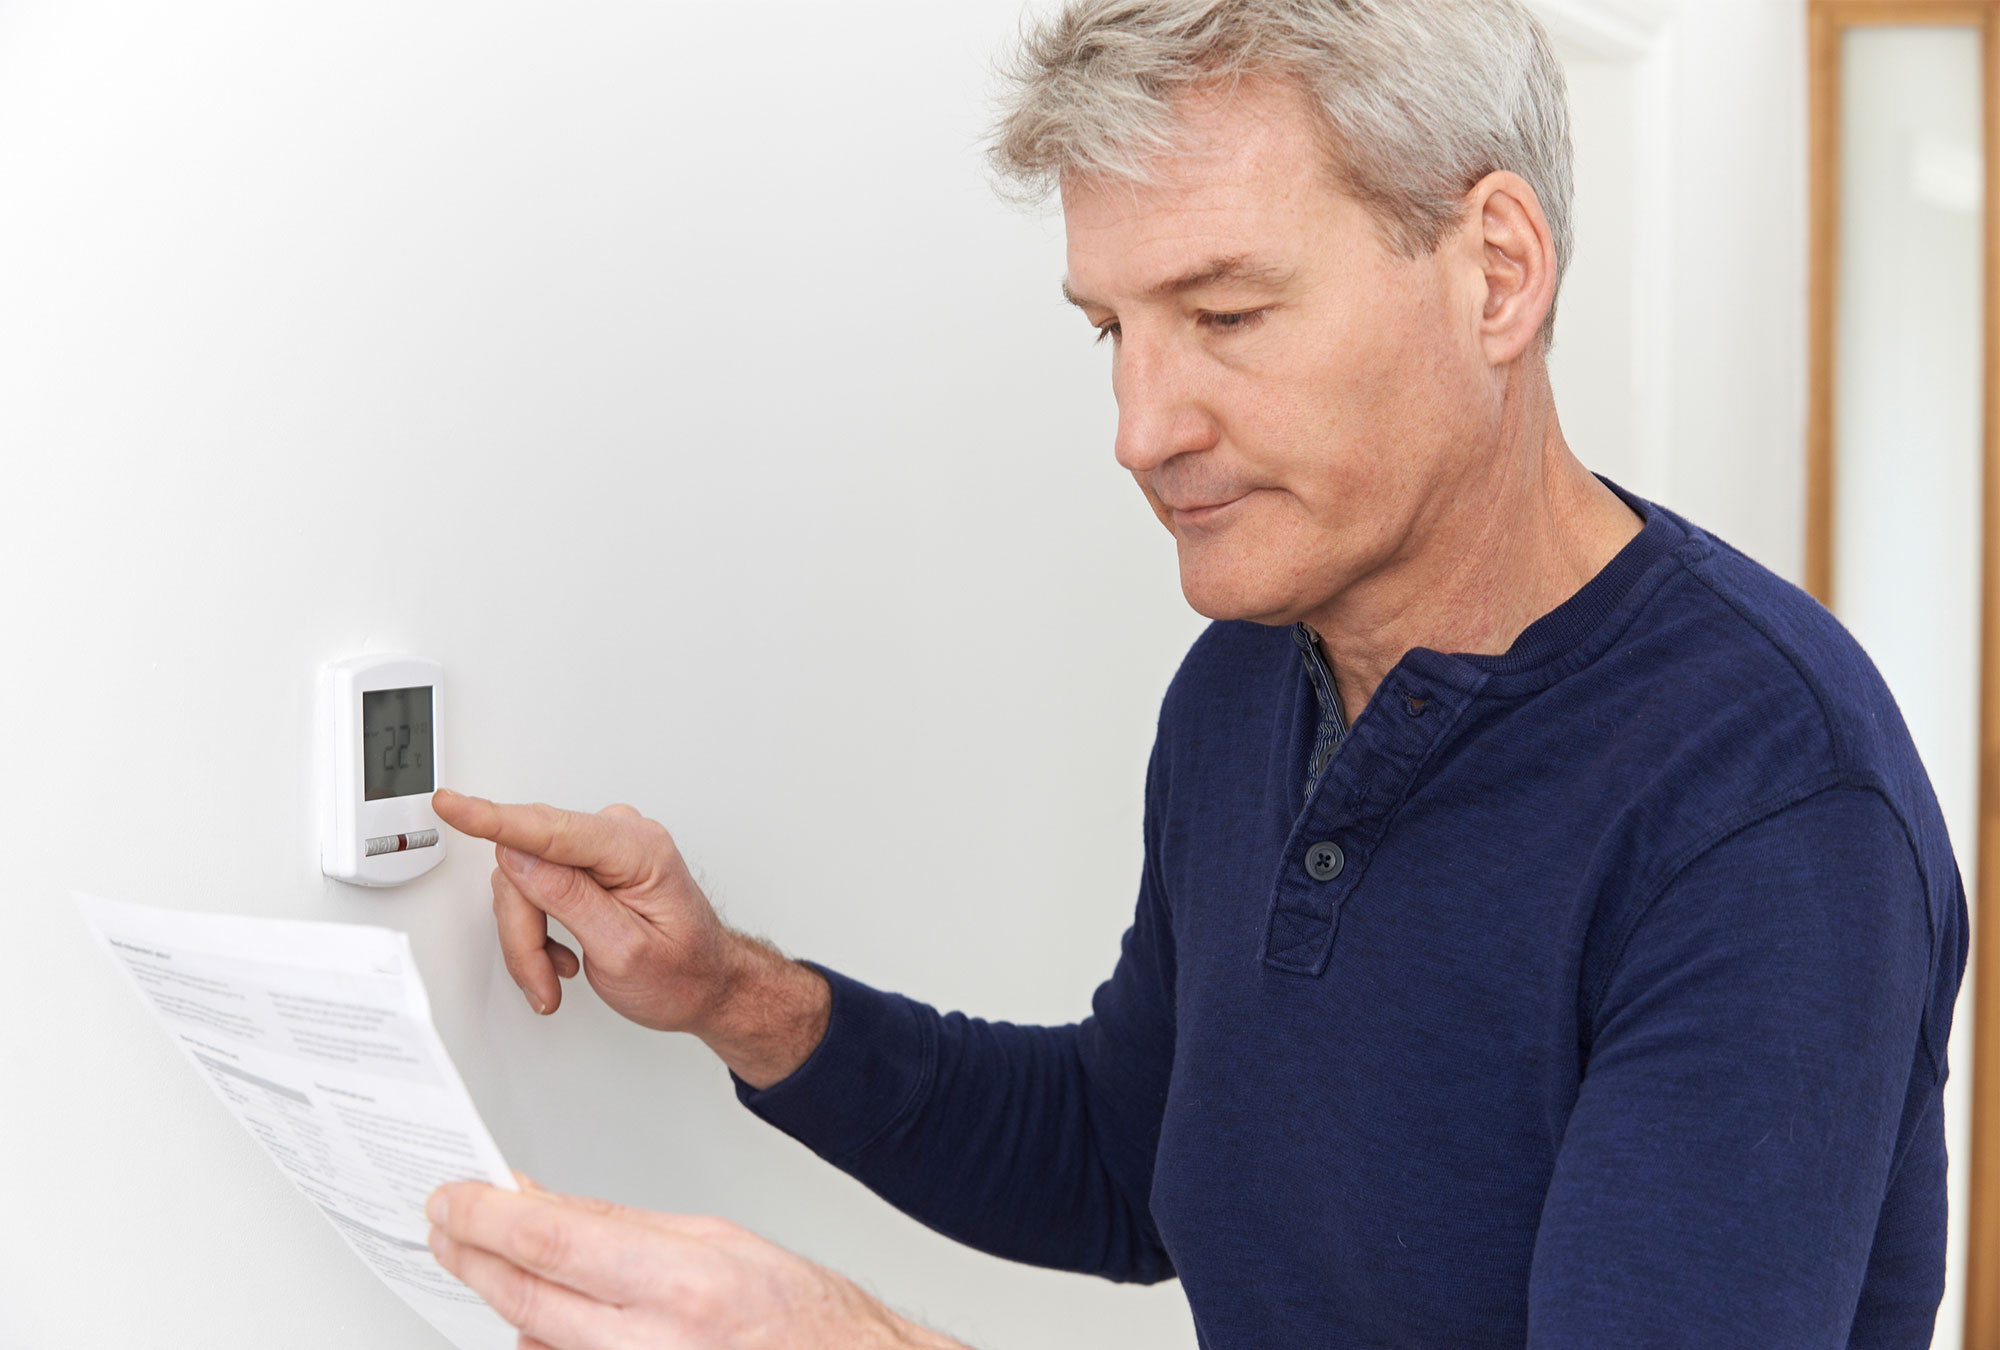 Man adjusts thermostat